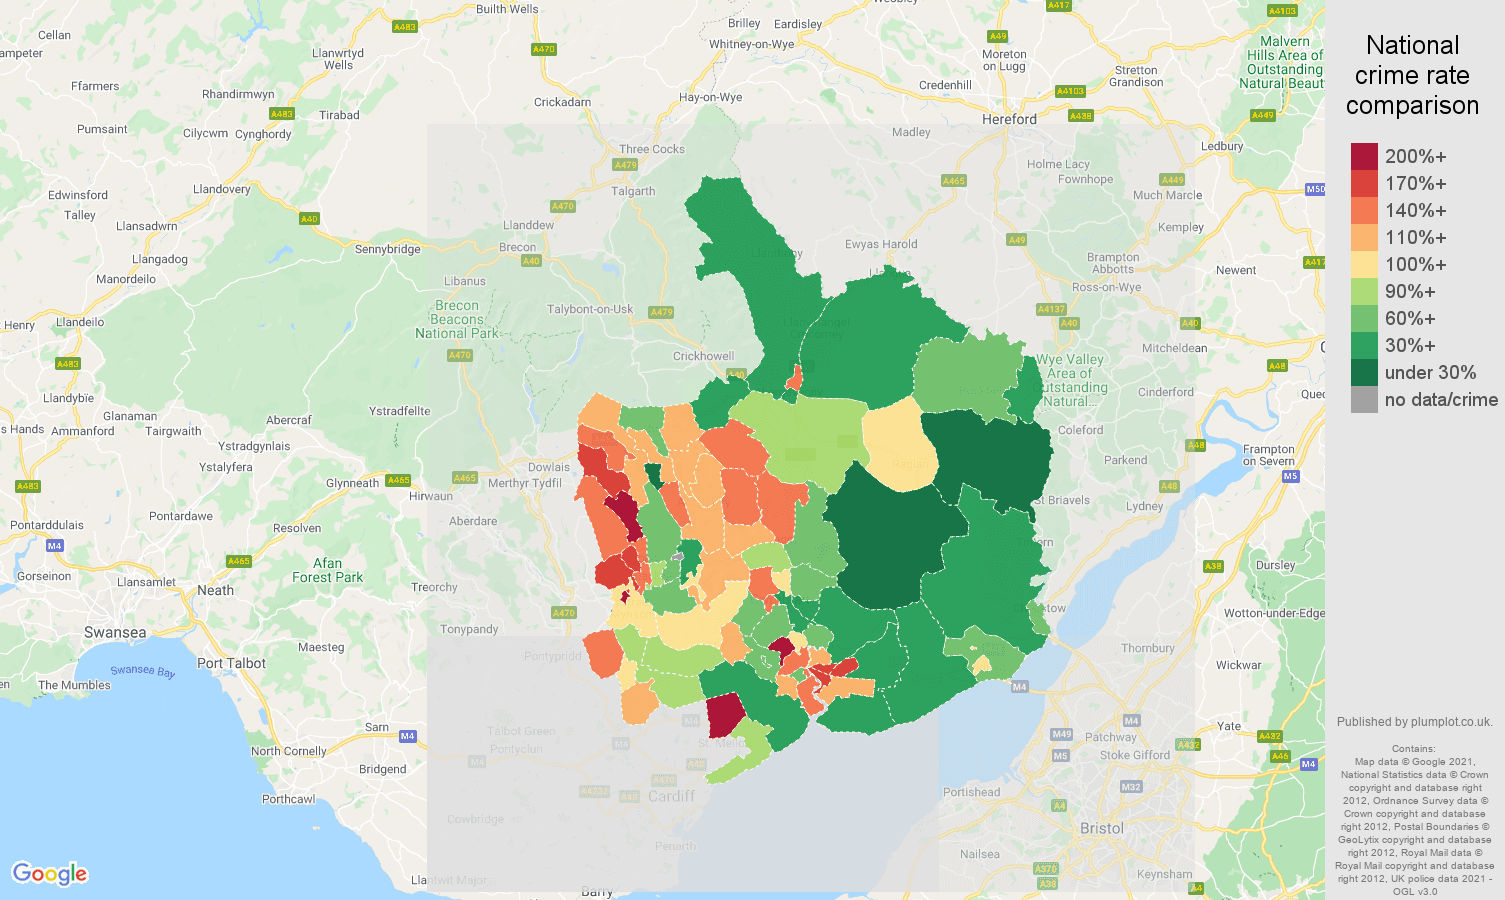 Gwent violent crime rate comparison map